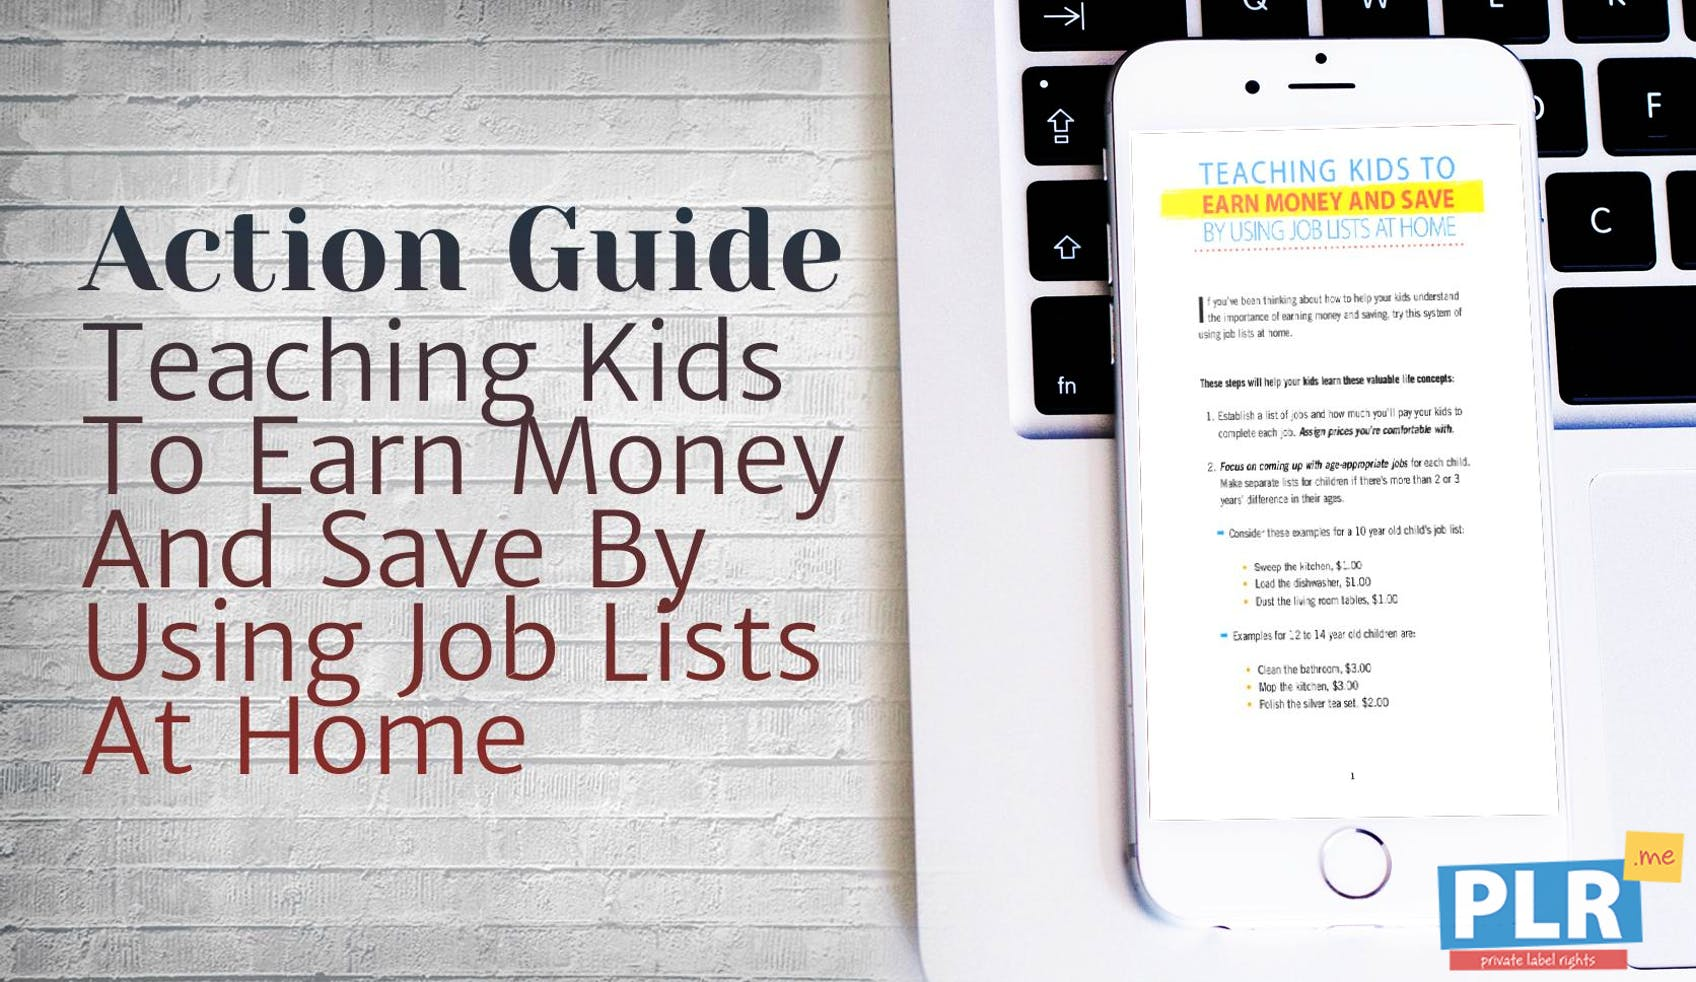 Teaching Kids To Earn Money And Save By Using Job Lists At Home